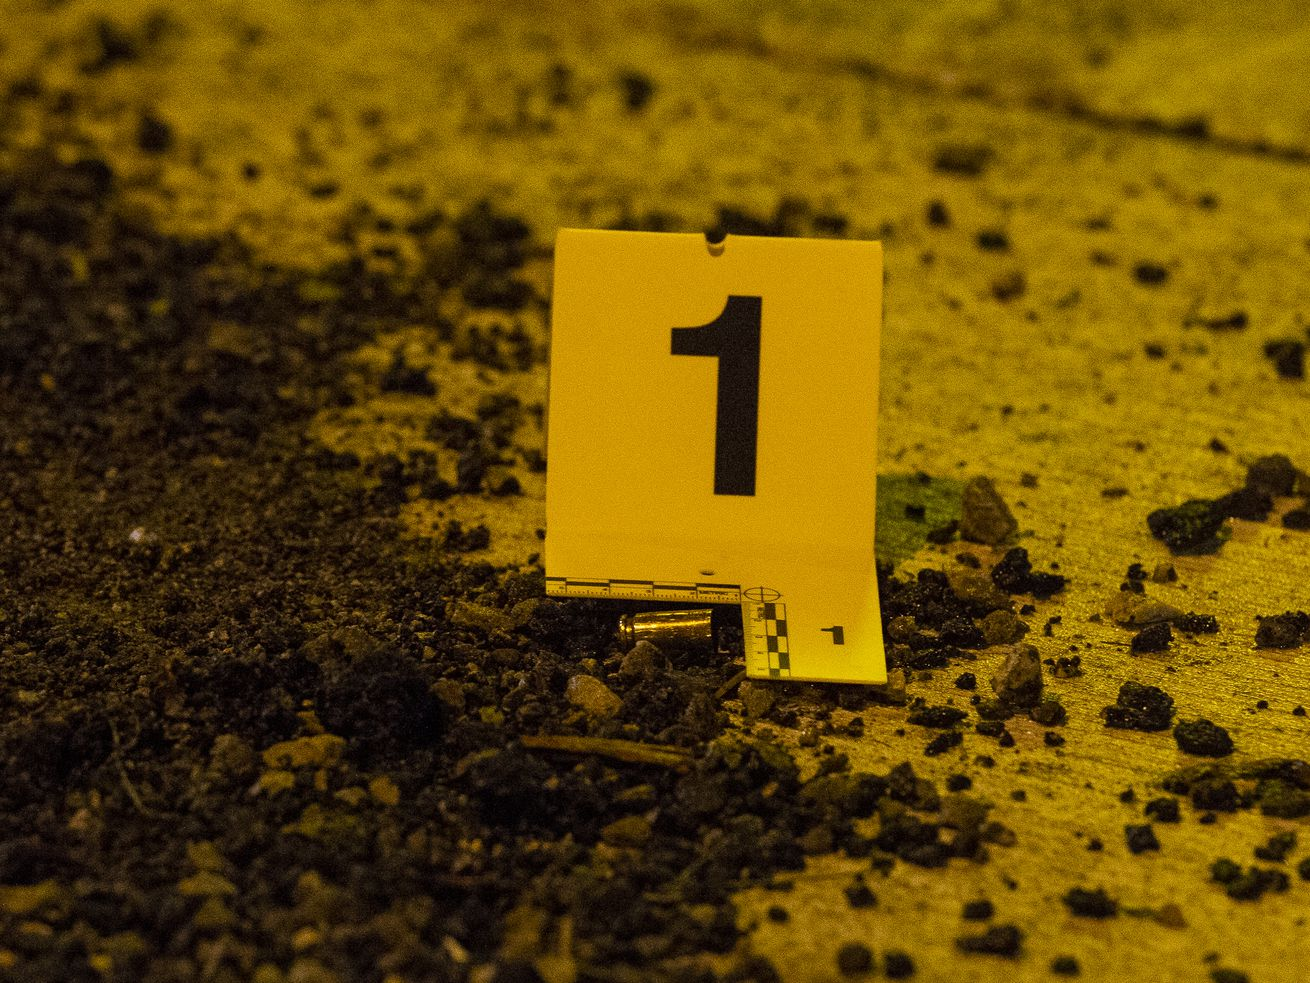 A fatal shooting left one man dead Oct. 24, 2020 in the 1300 block of North Harding Avenue.